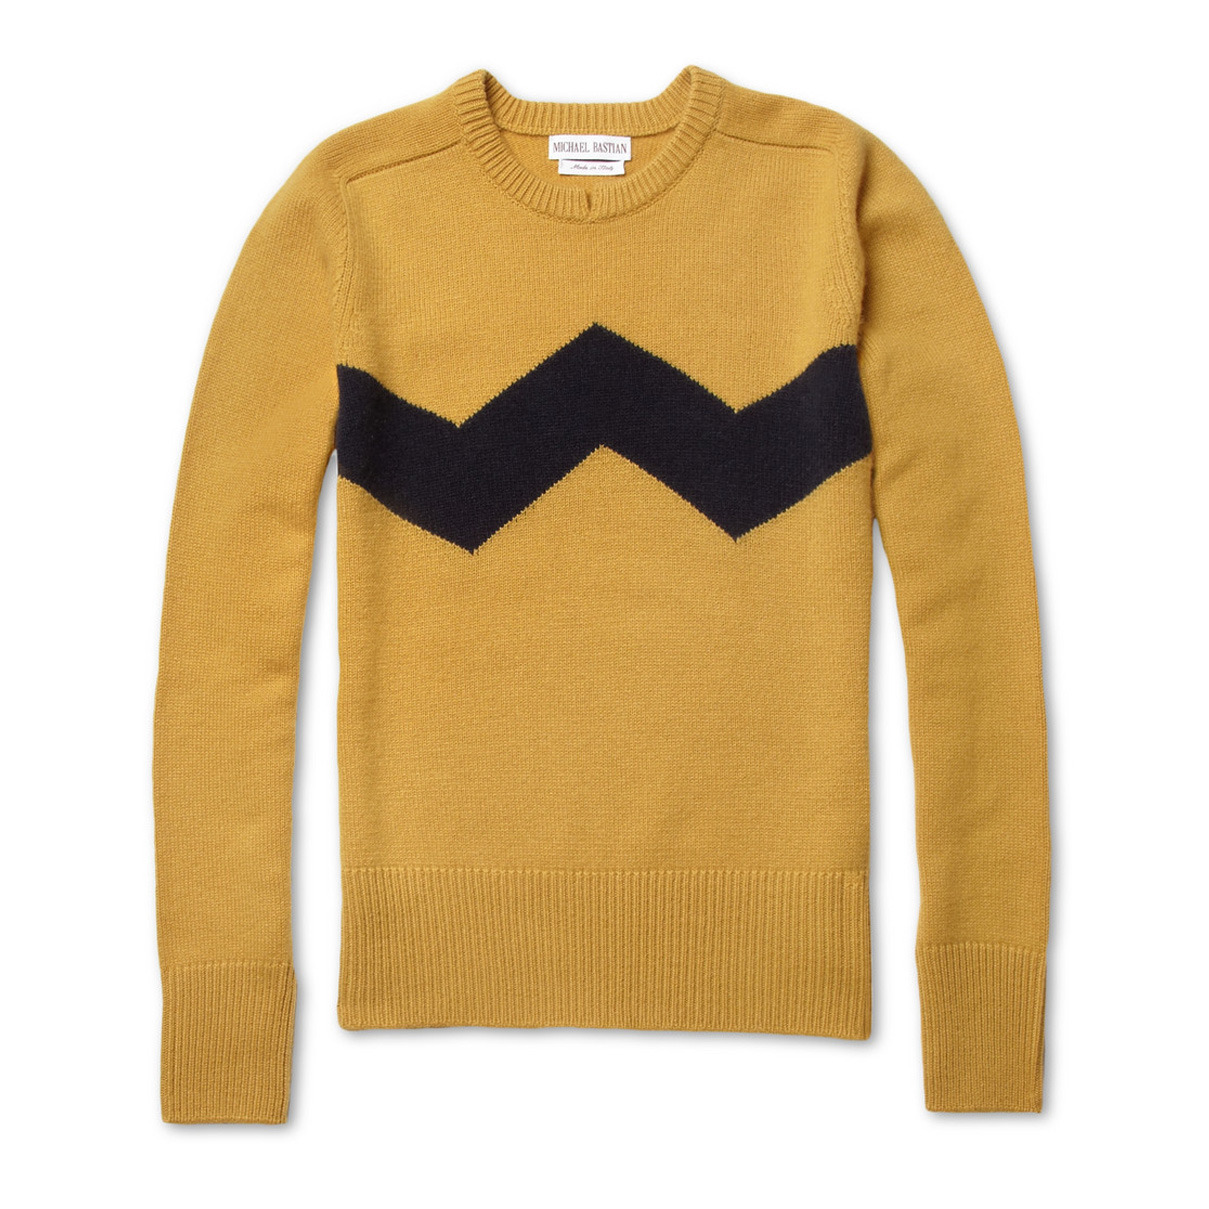 MICHAEL BASTIAN's Charlie Brown sweater is the Peanuts